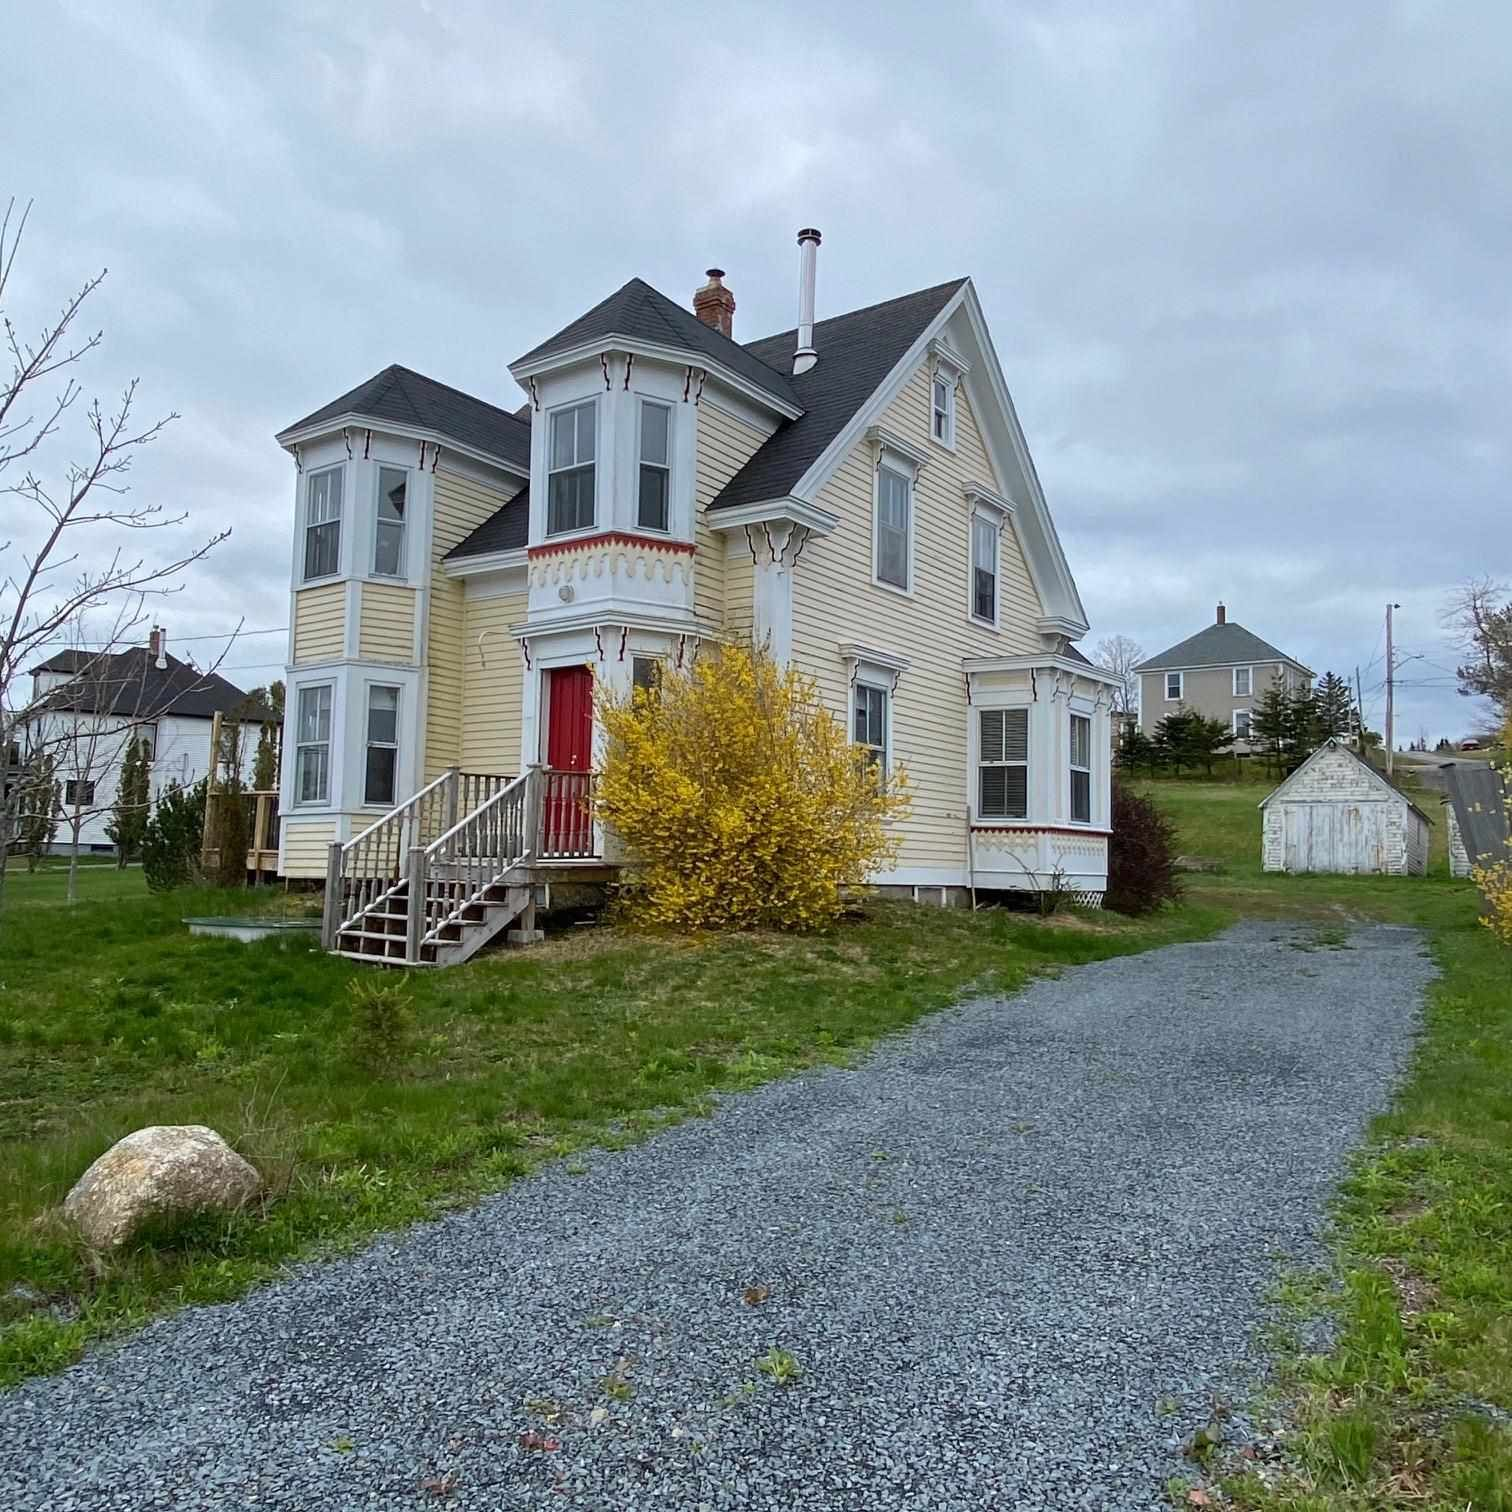 Main Photo: 3781 HIGHWAY 332 in Riverport: 405-Lunenburg County Residential for sale (South Shore)  : MLS®# 202111188